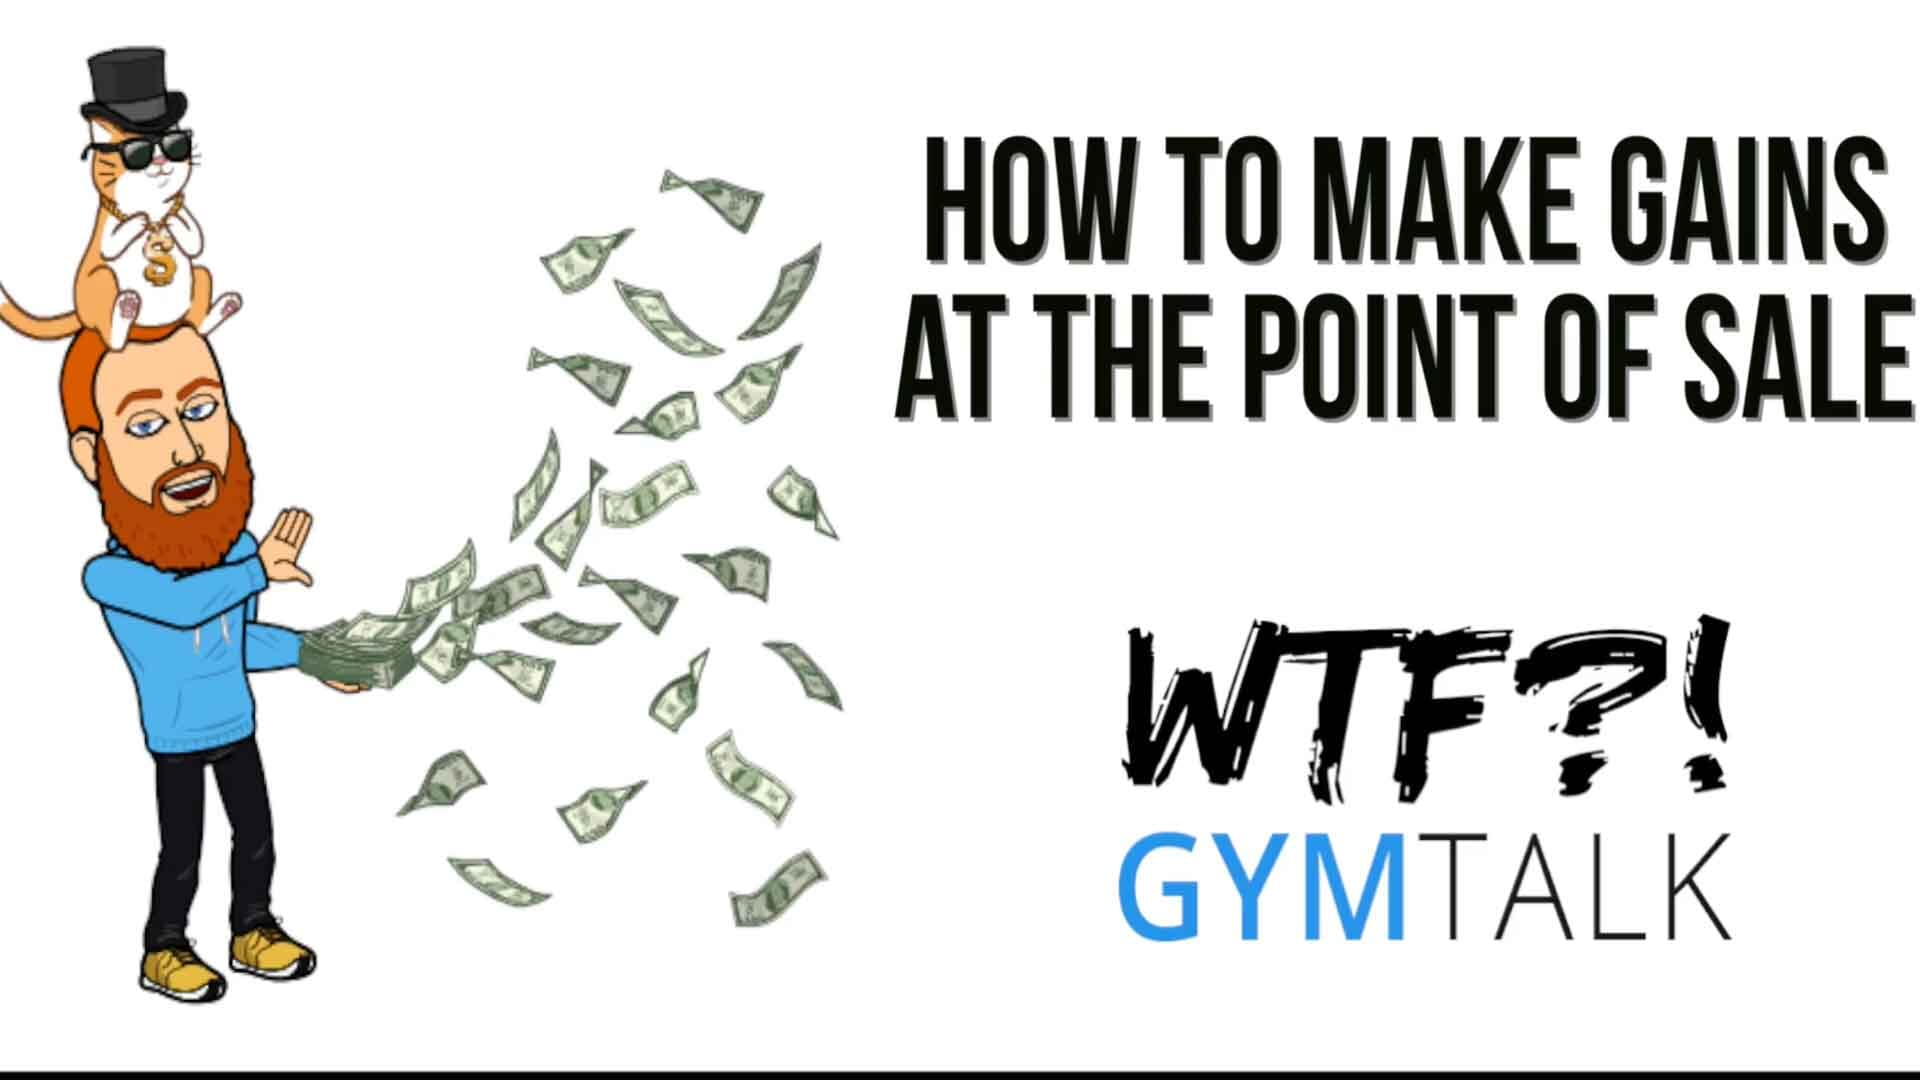 WTF Gym Talk | Making Gains At The Point Of Sale